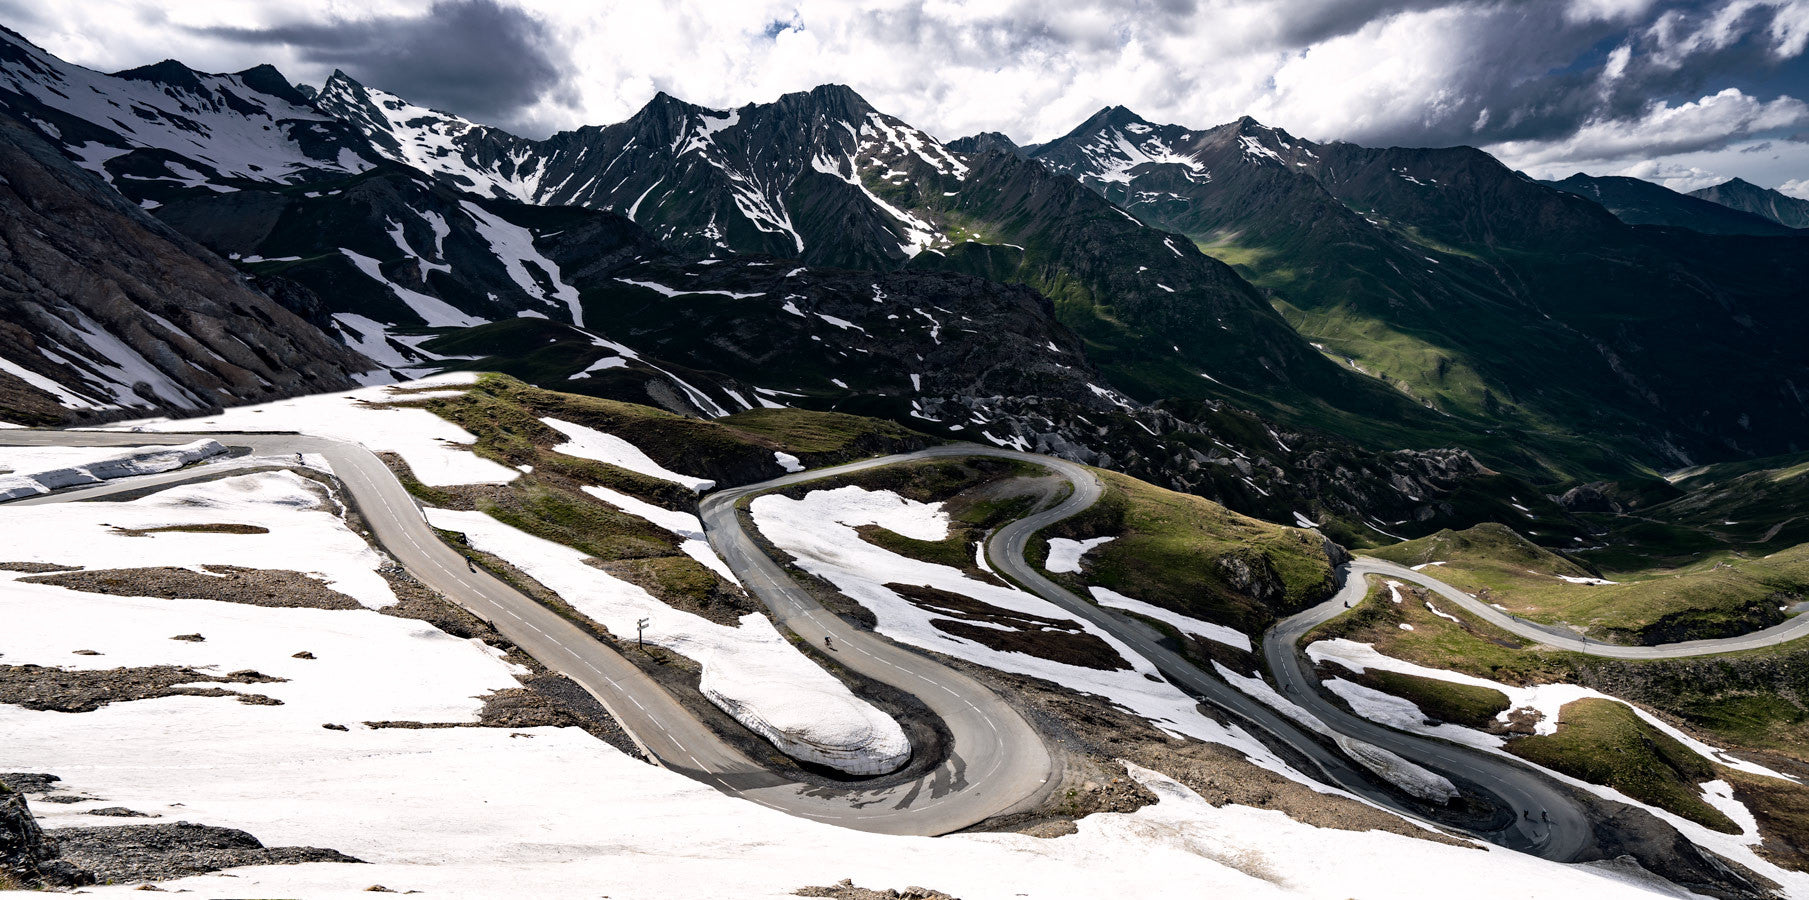 Col du Galibier, cycling photography by davidt